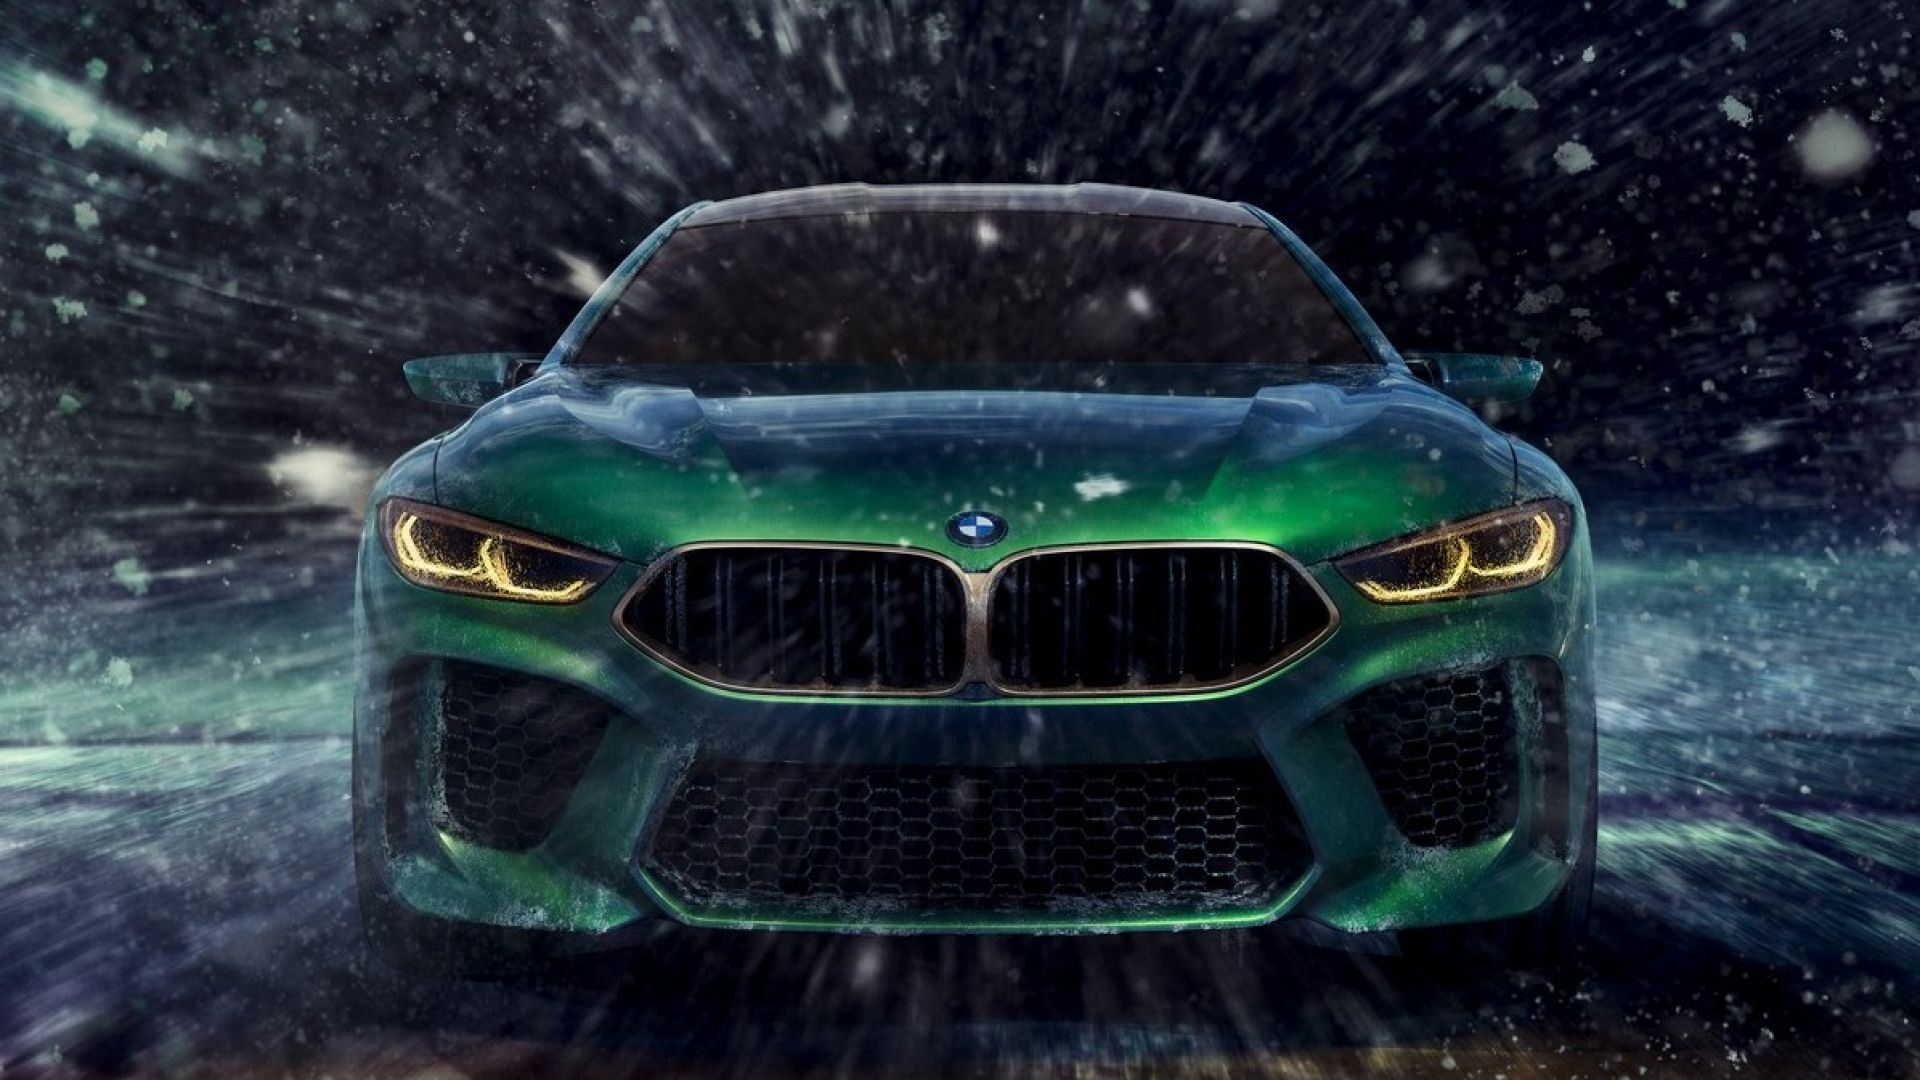 Nuova Bmw M8 E Serie 8 Coup 233 2018 Foto Video E Data Di